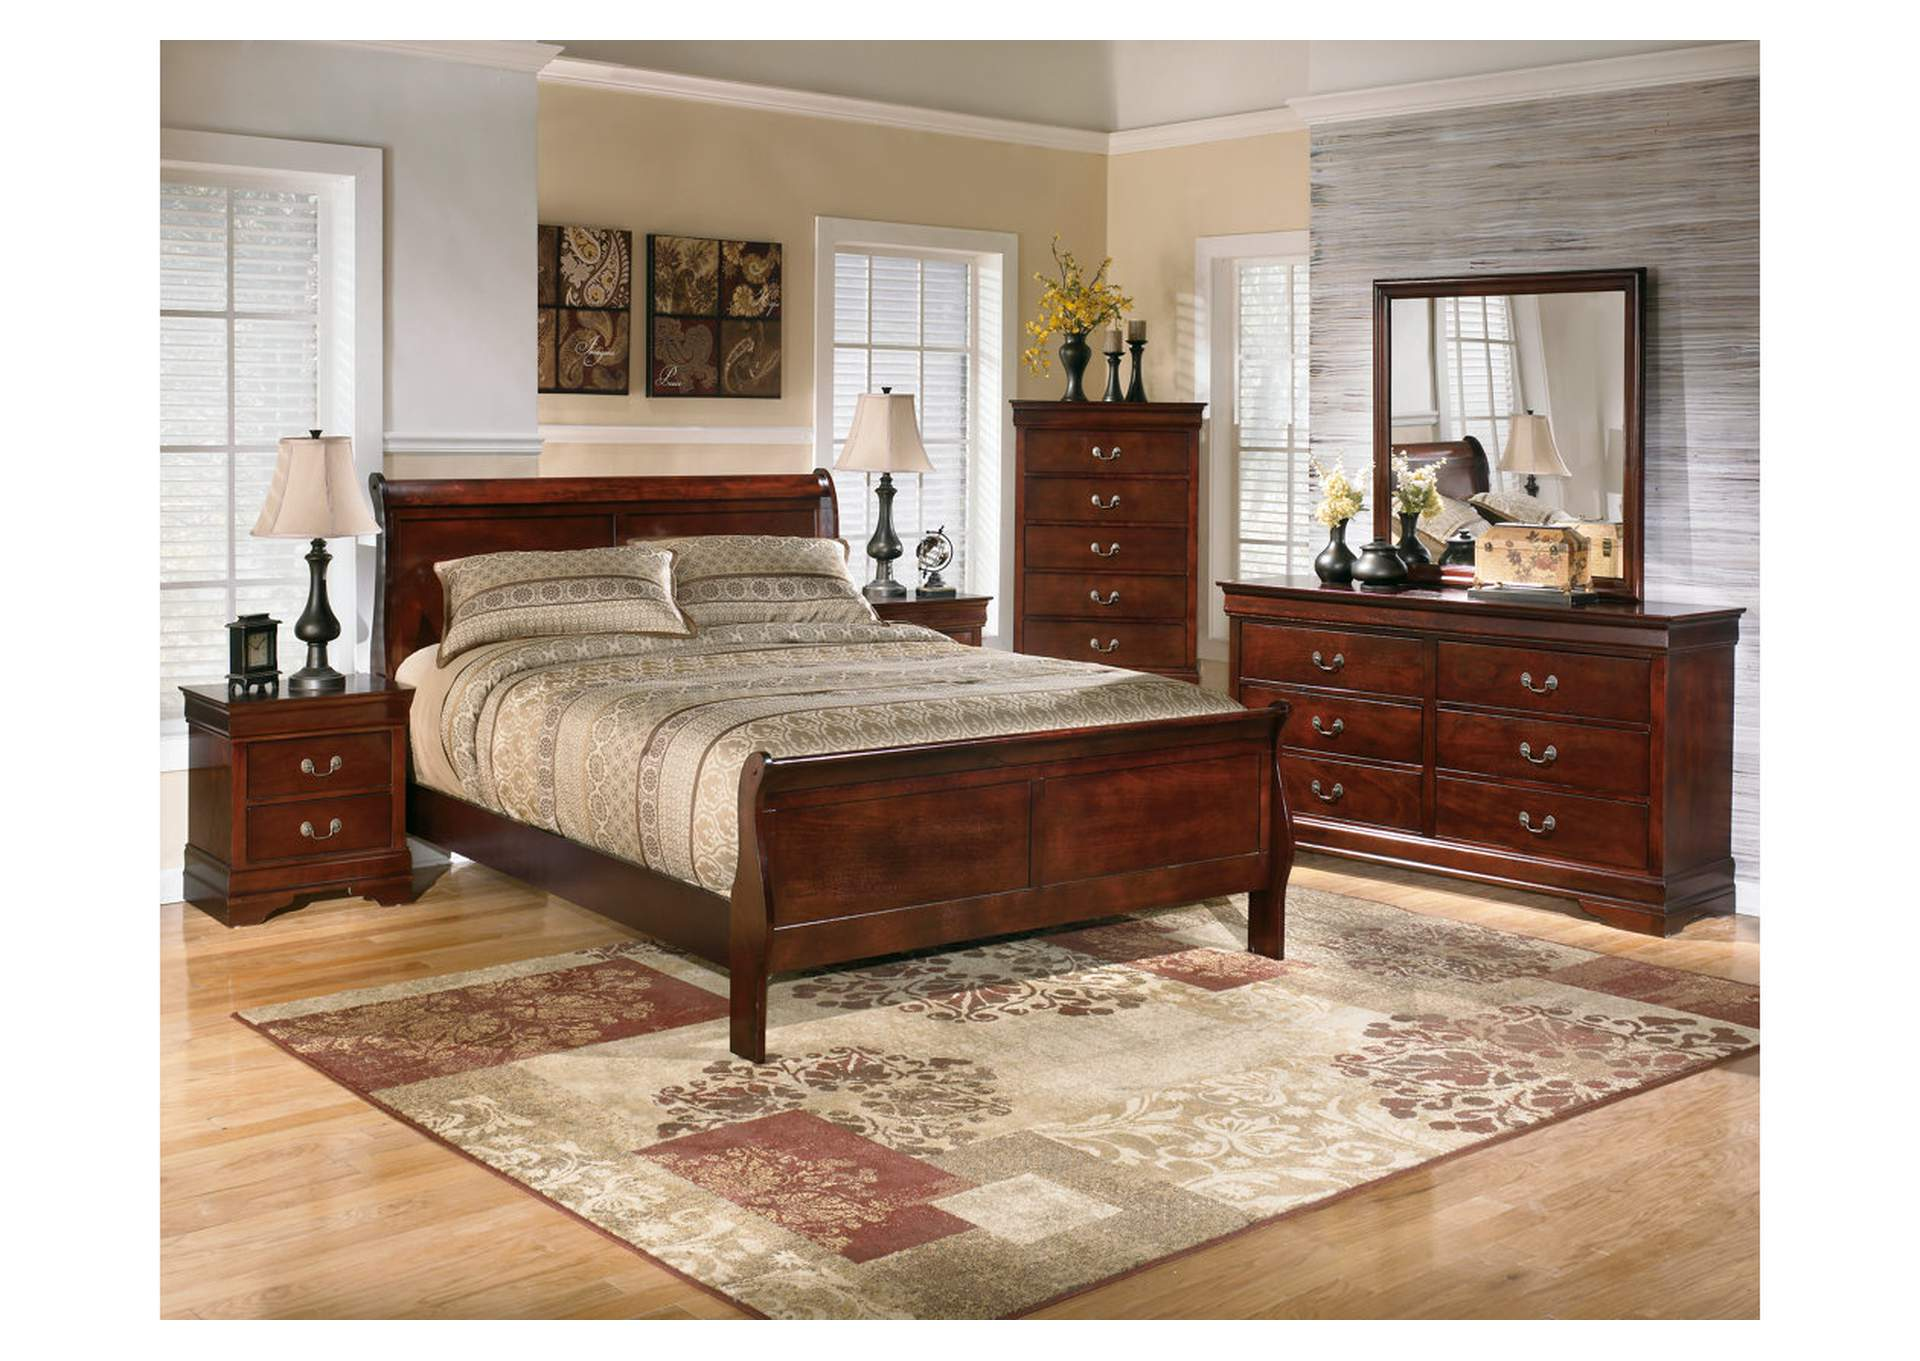 Alisdair Queen Sleigh Bed w/Dresser, Mirror & 2 Nightstands,Signature Design By Ashley